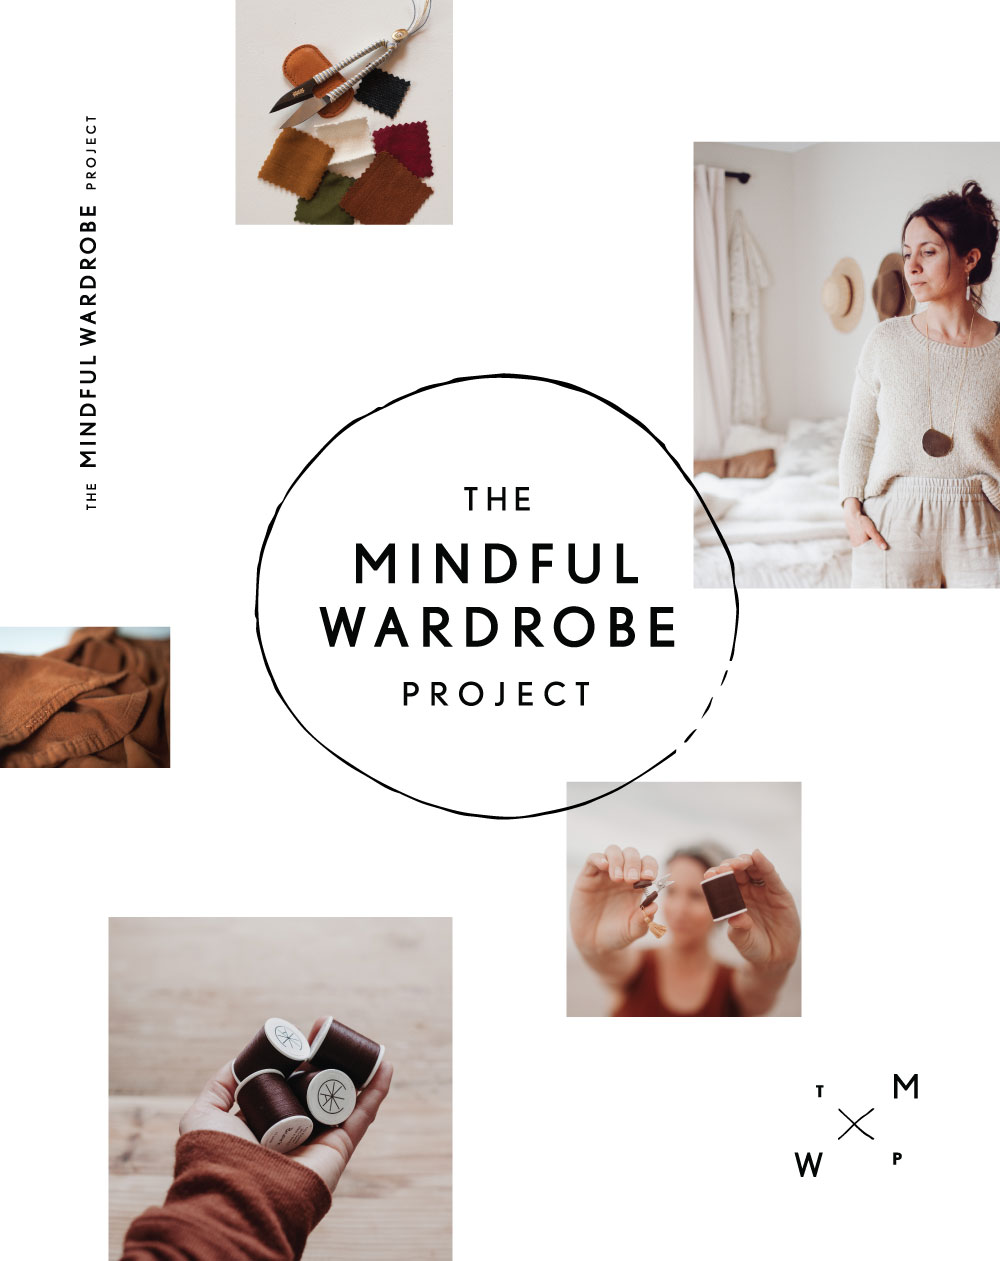 The Mindful Wardrobe Project Logo and Branding Design | www.alicia-carvalho.com